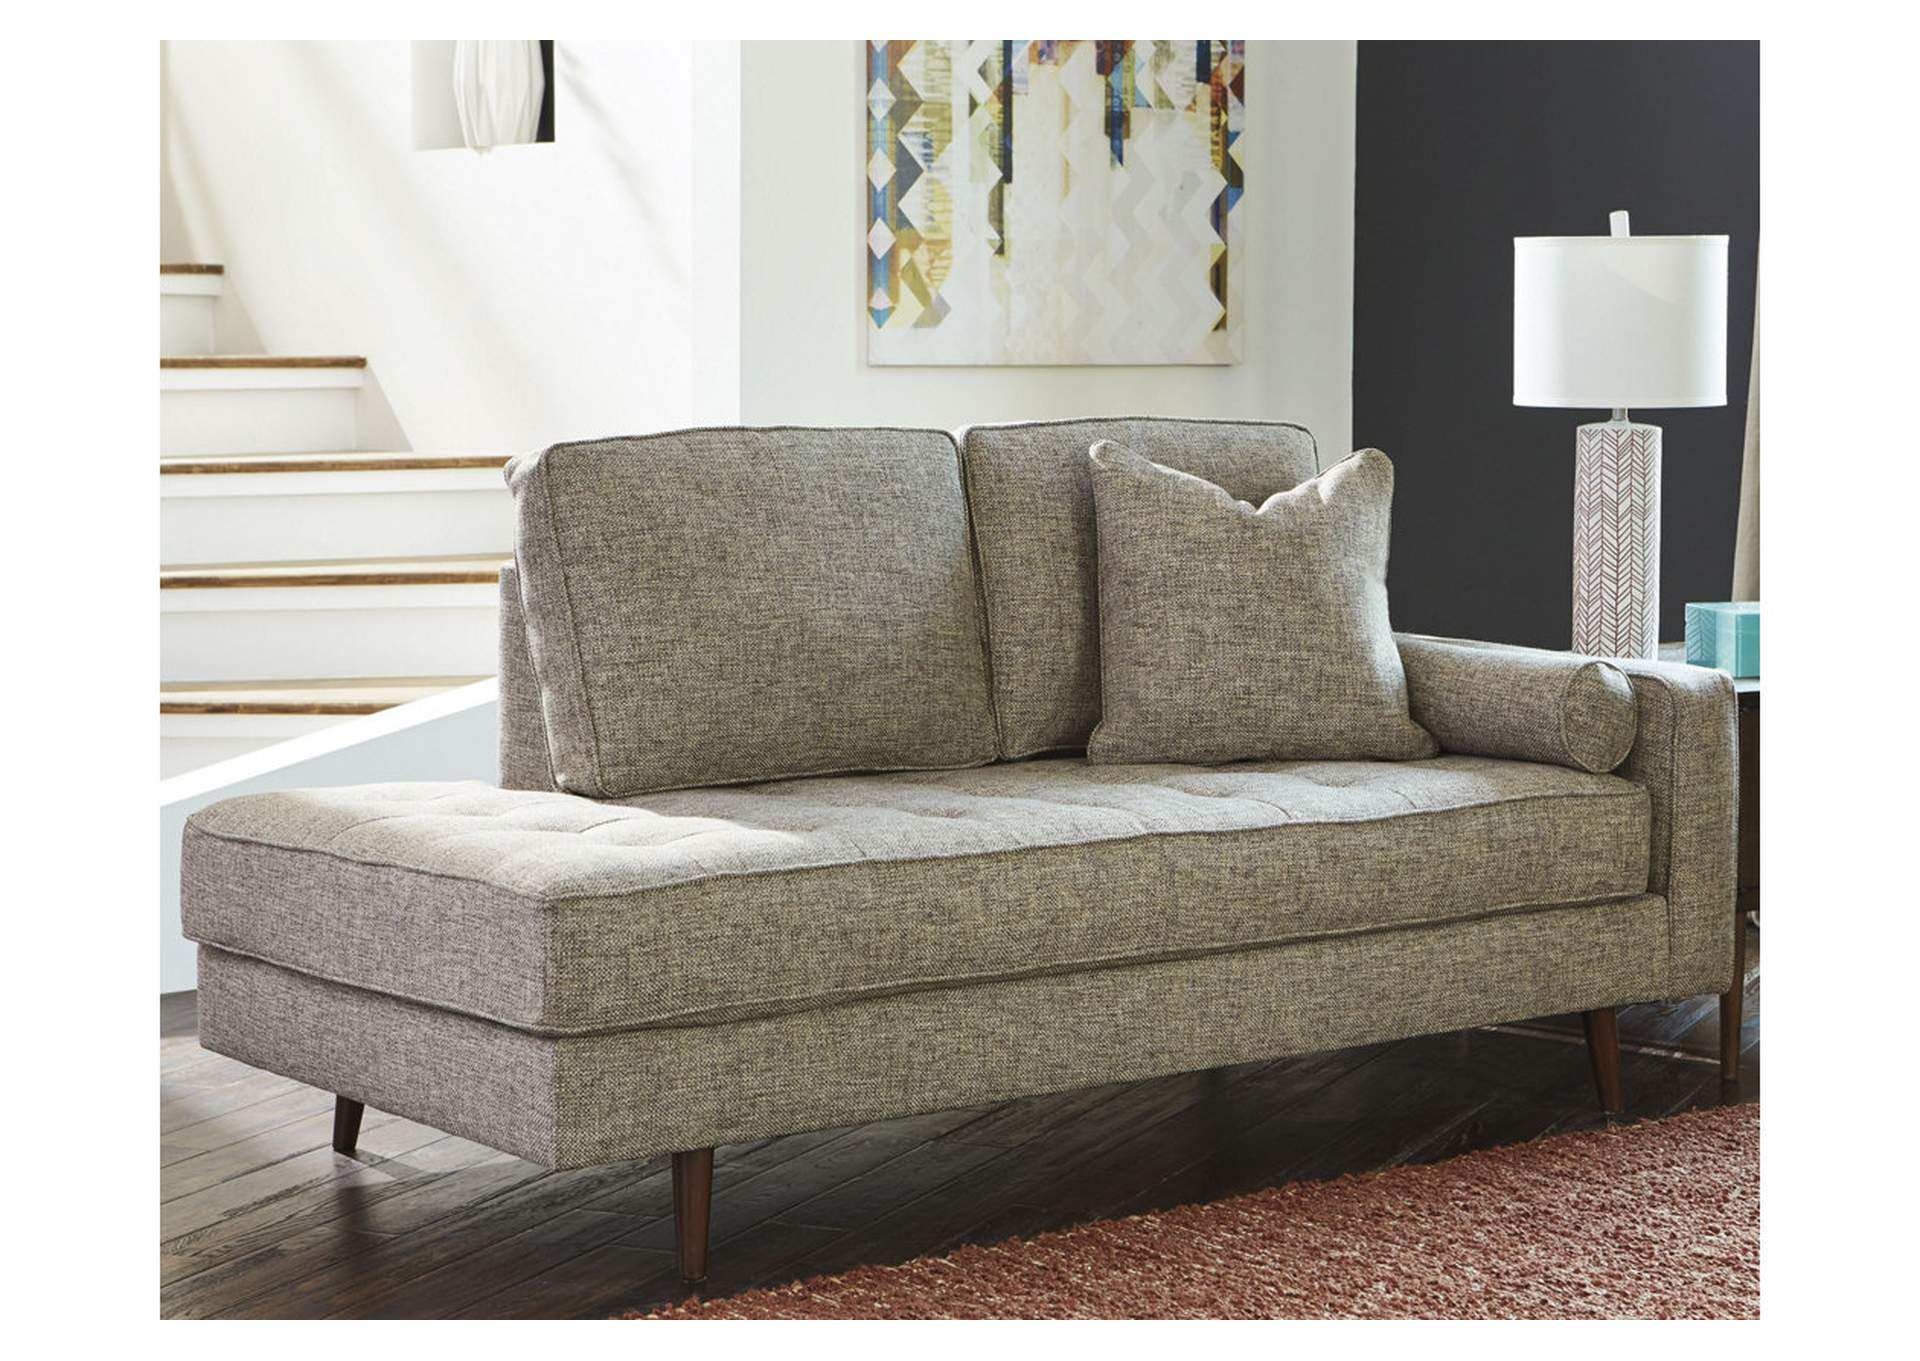 Dahra Jute Right Facing Corner Chaise,Benchcraft